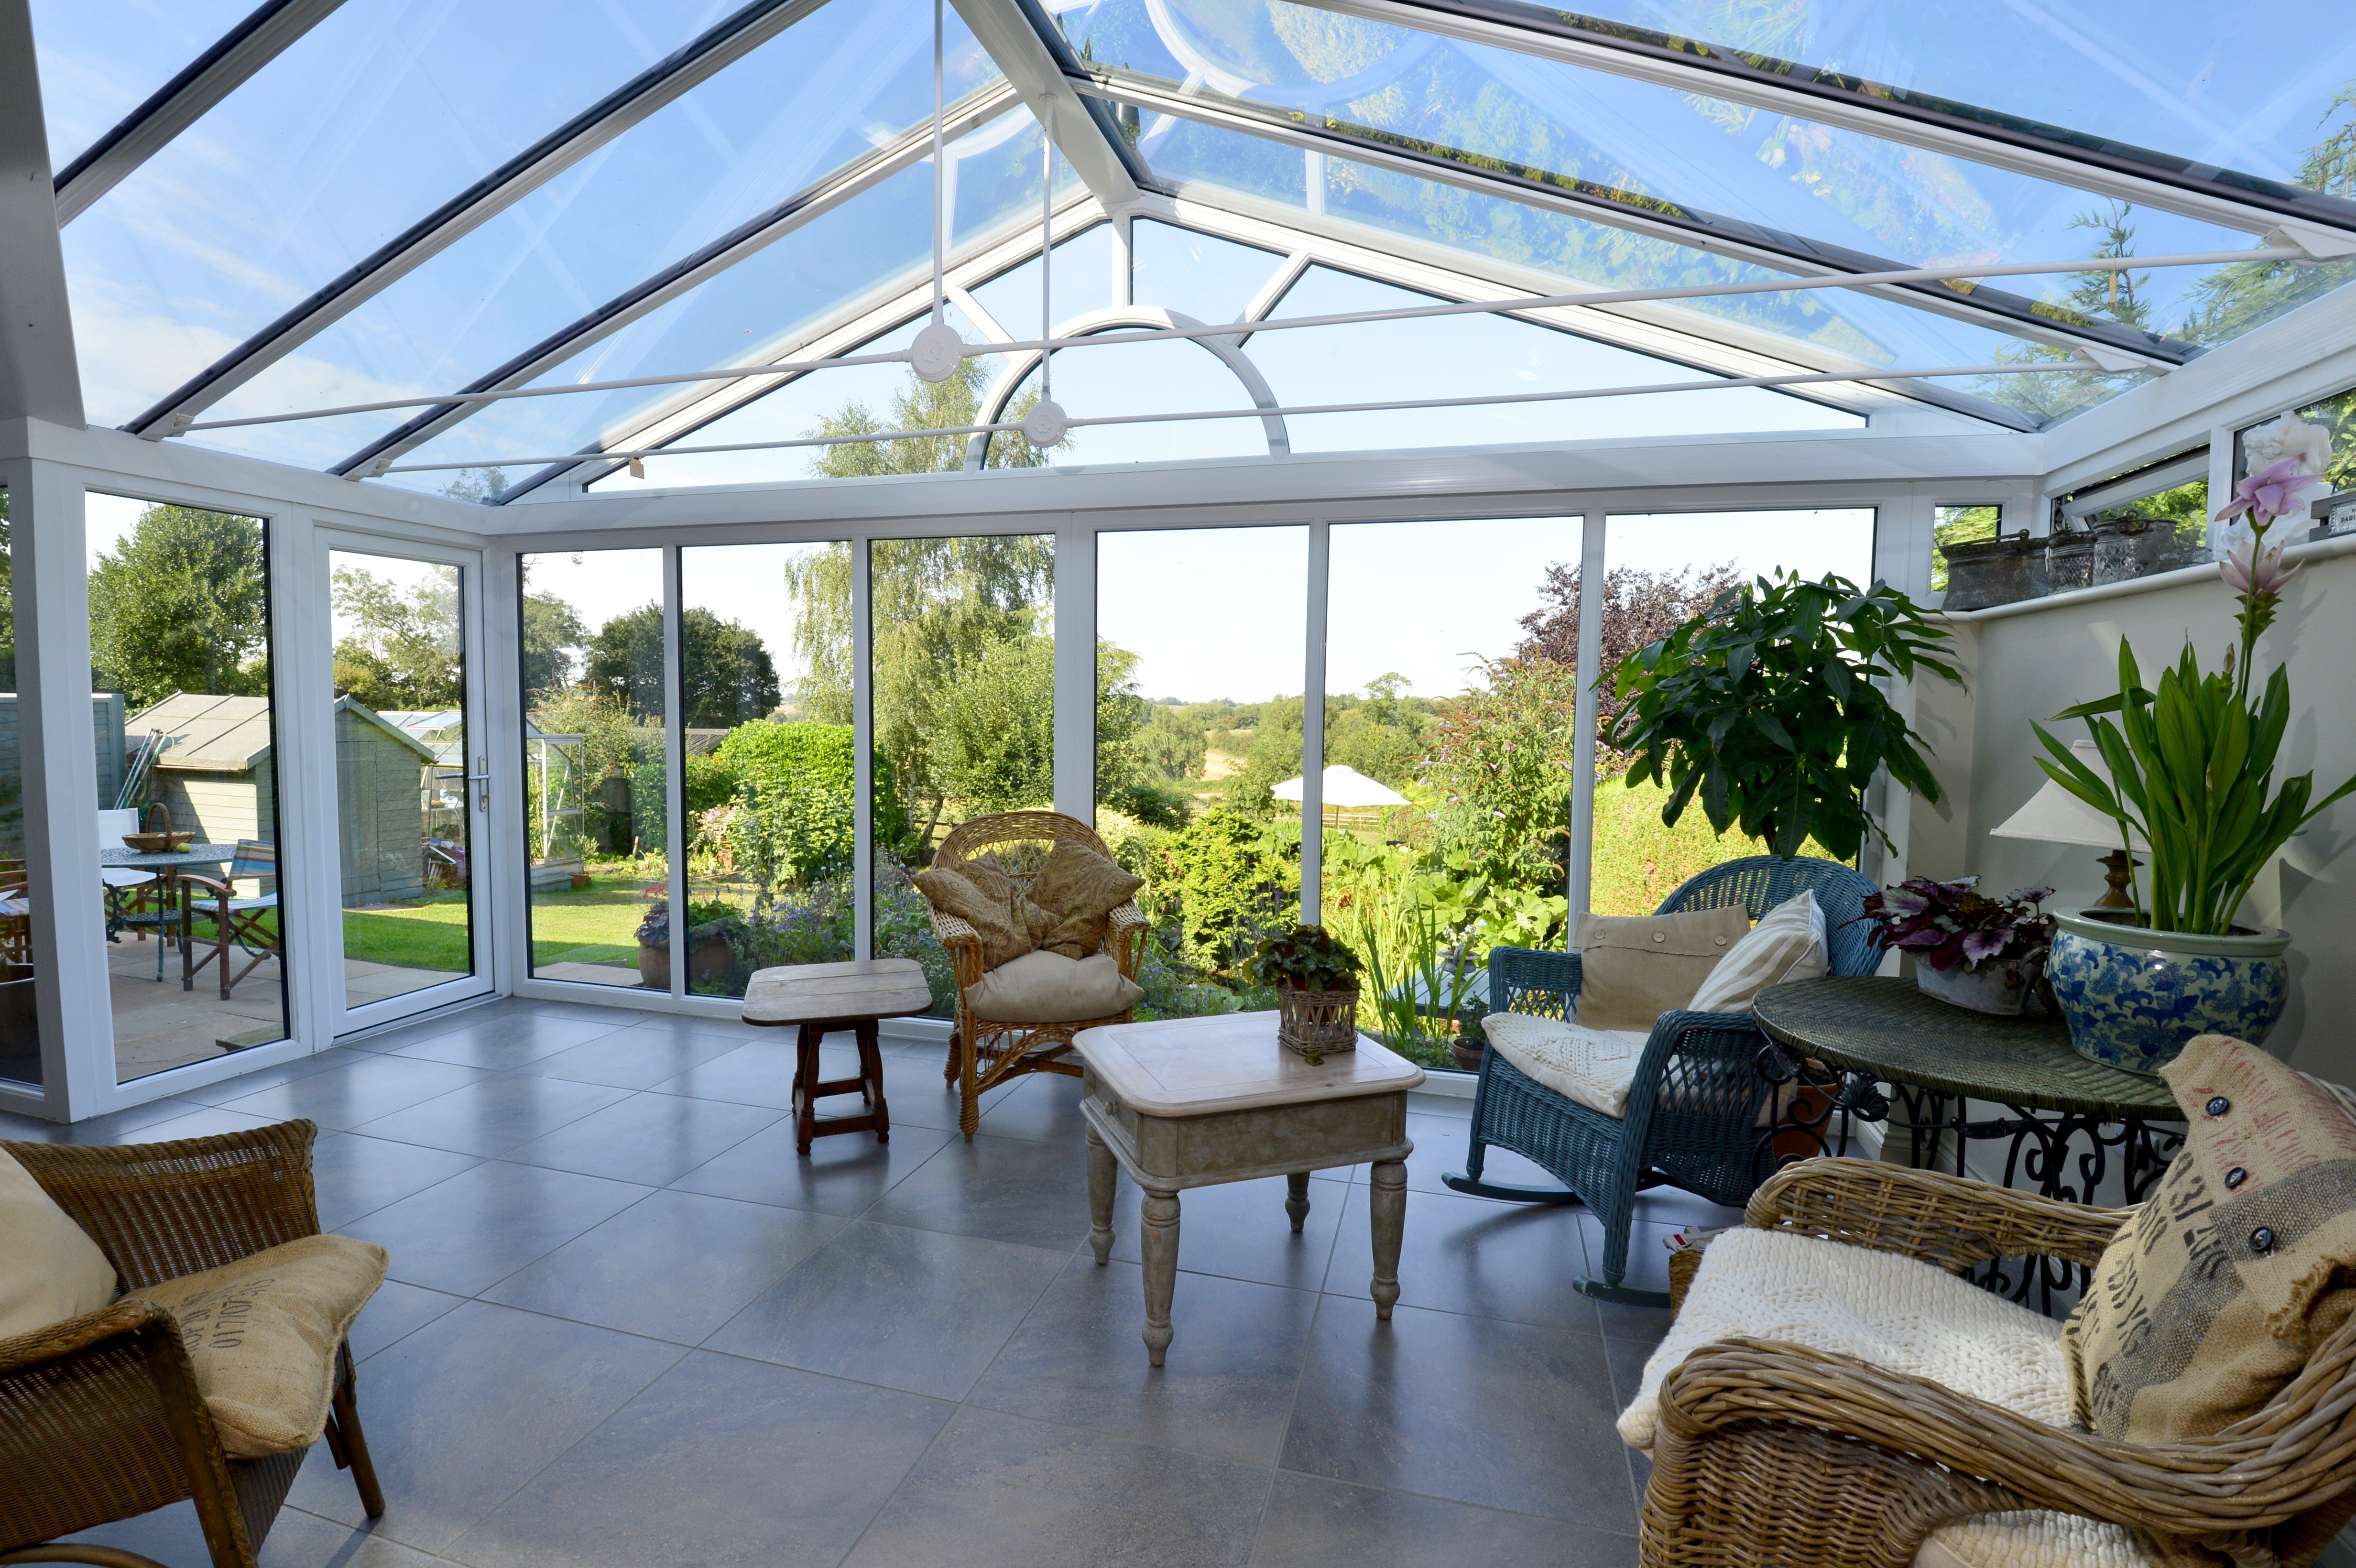 Conservatory Interior Design, by Sarah Maidment Interiors, Berkhamsted, St. Albans, Hertfordshire